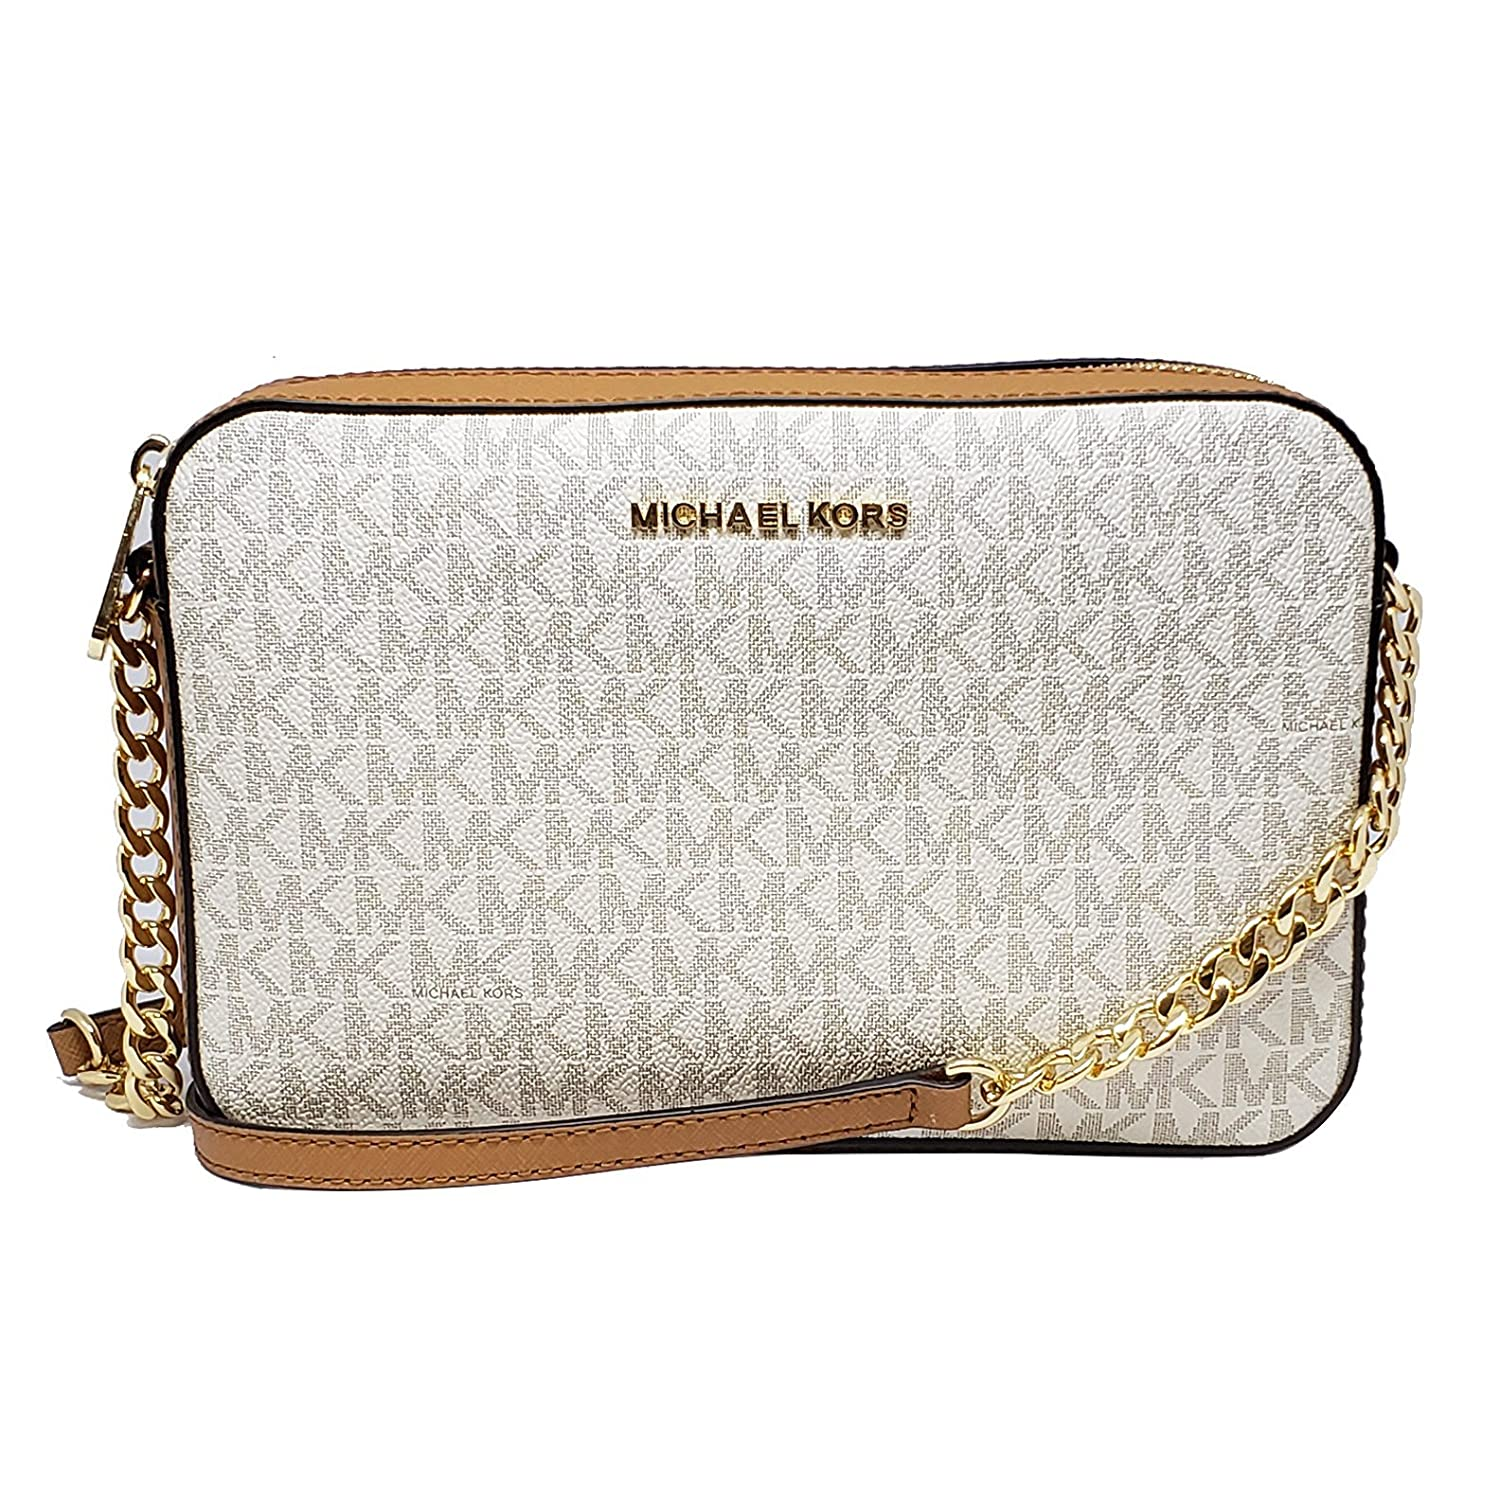 54667d3ecf8511 Michael Kors Jet Set Item Large Crossbody Vanilla/Acrn (35F8GTTC3B):  Amazon.co.uk: Shoes & Bags